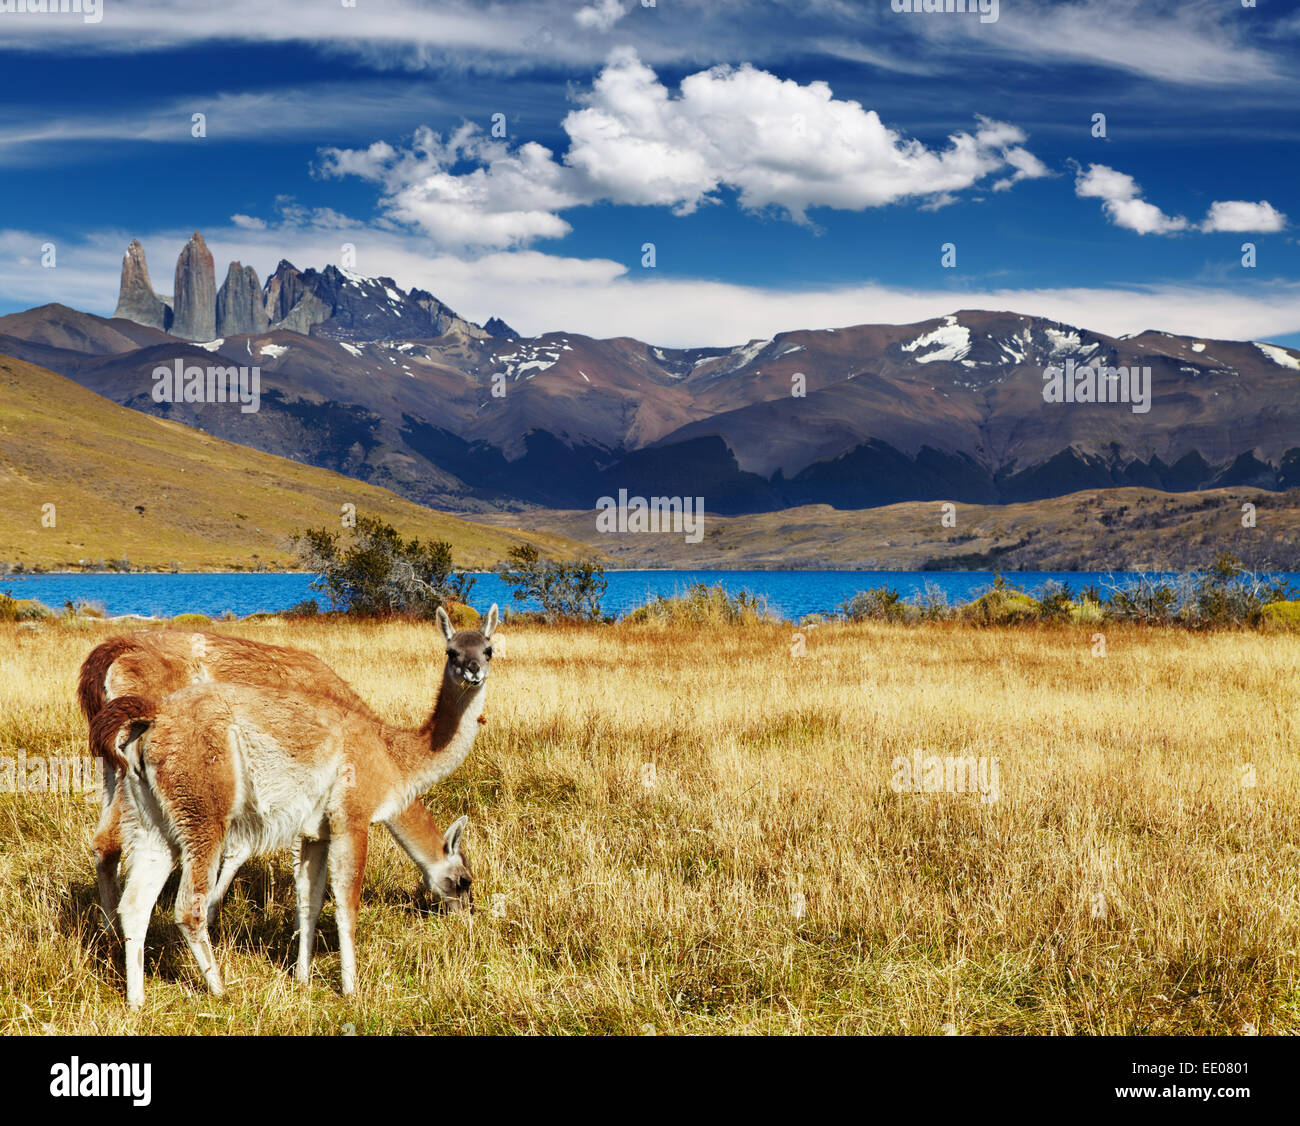 Guanacos dans le Parc National Torres del Paine, Laguna Azul, Patagonie, Chili Photo Stock